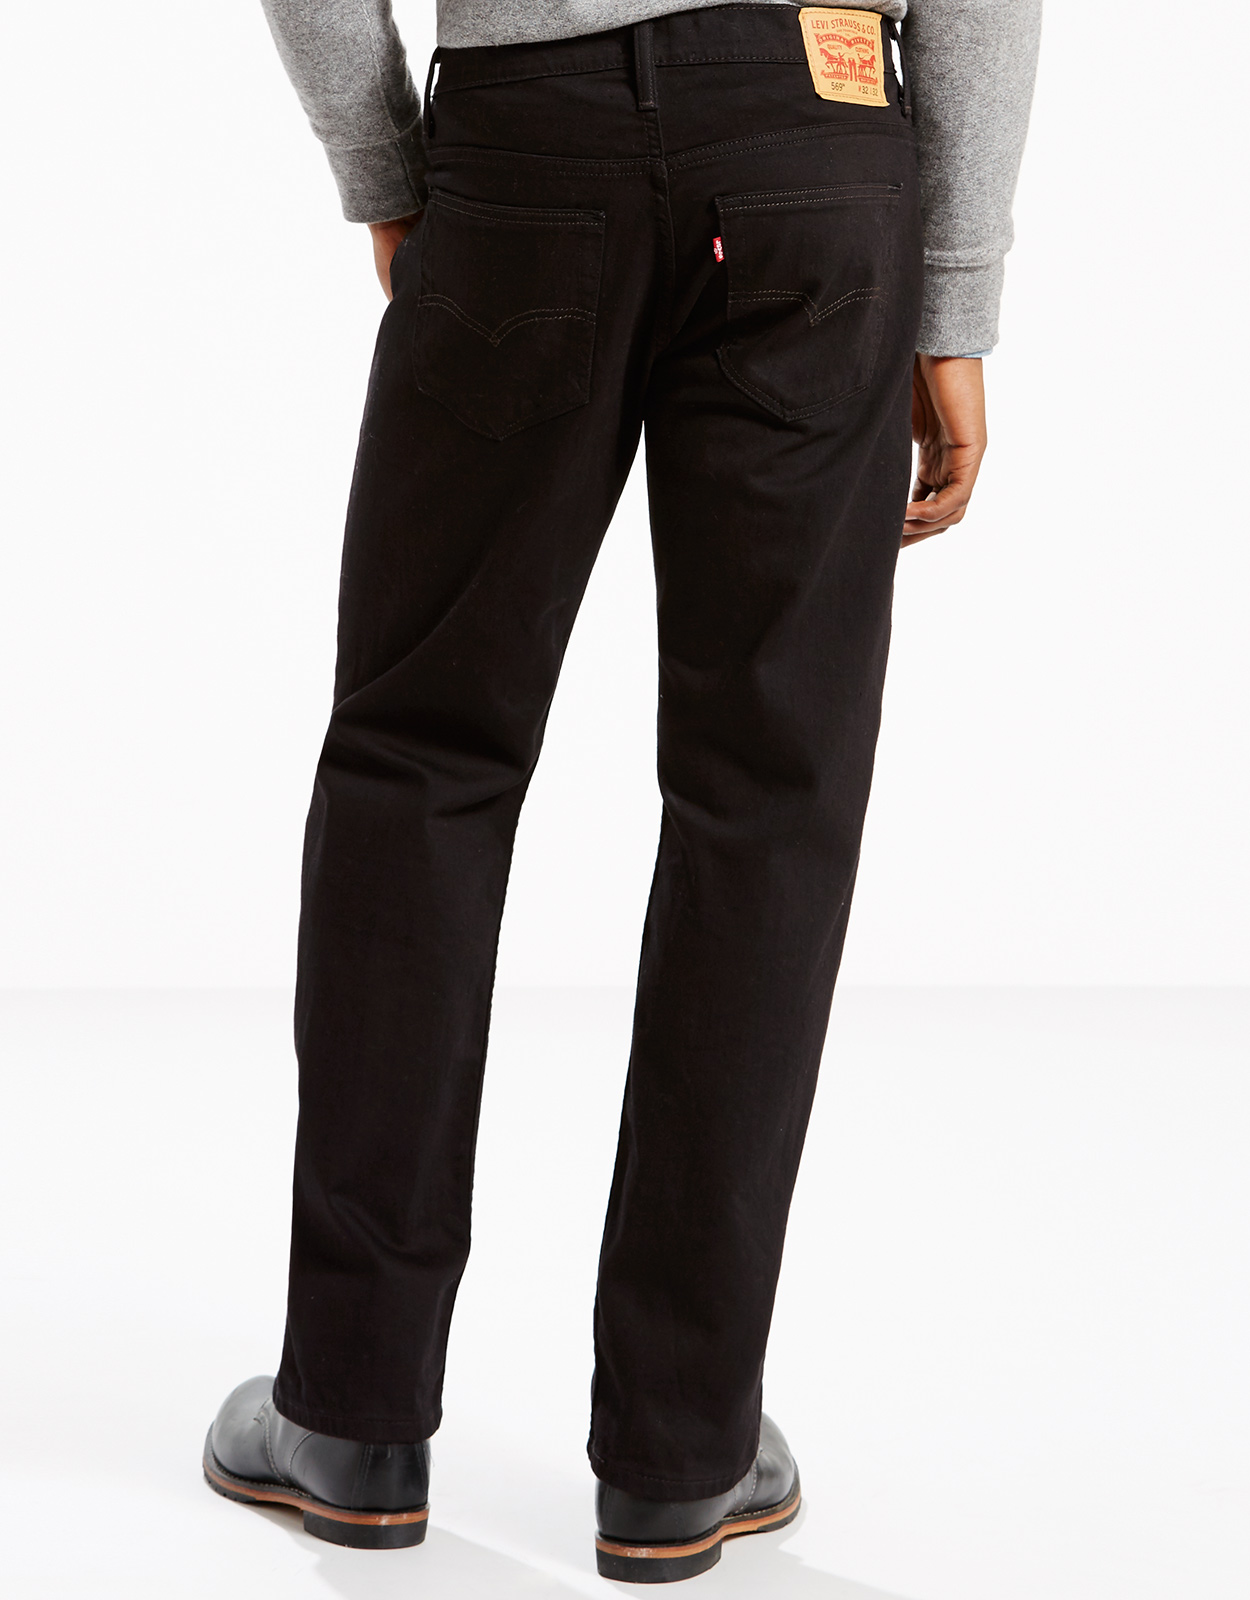 Levi's Men's 569 Loose Straight Stretch Low Rise Loose Fit Straight Leg Jeans - Black